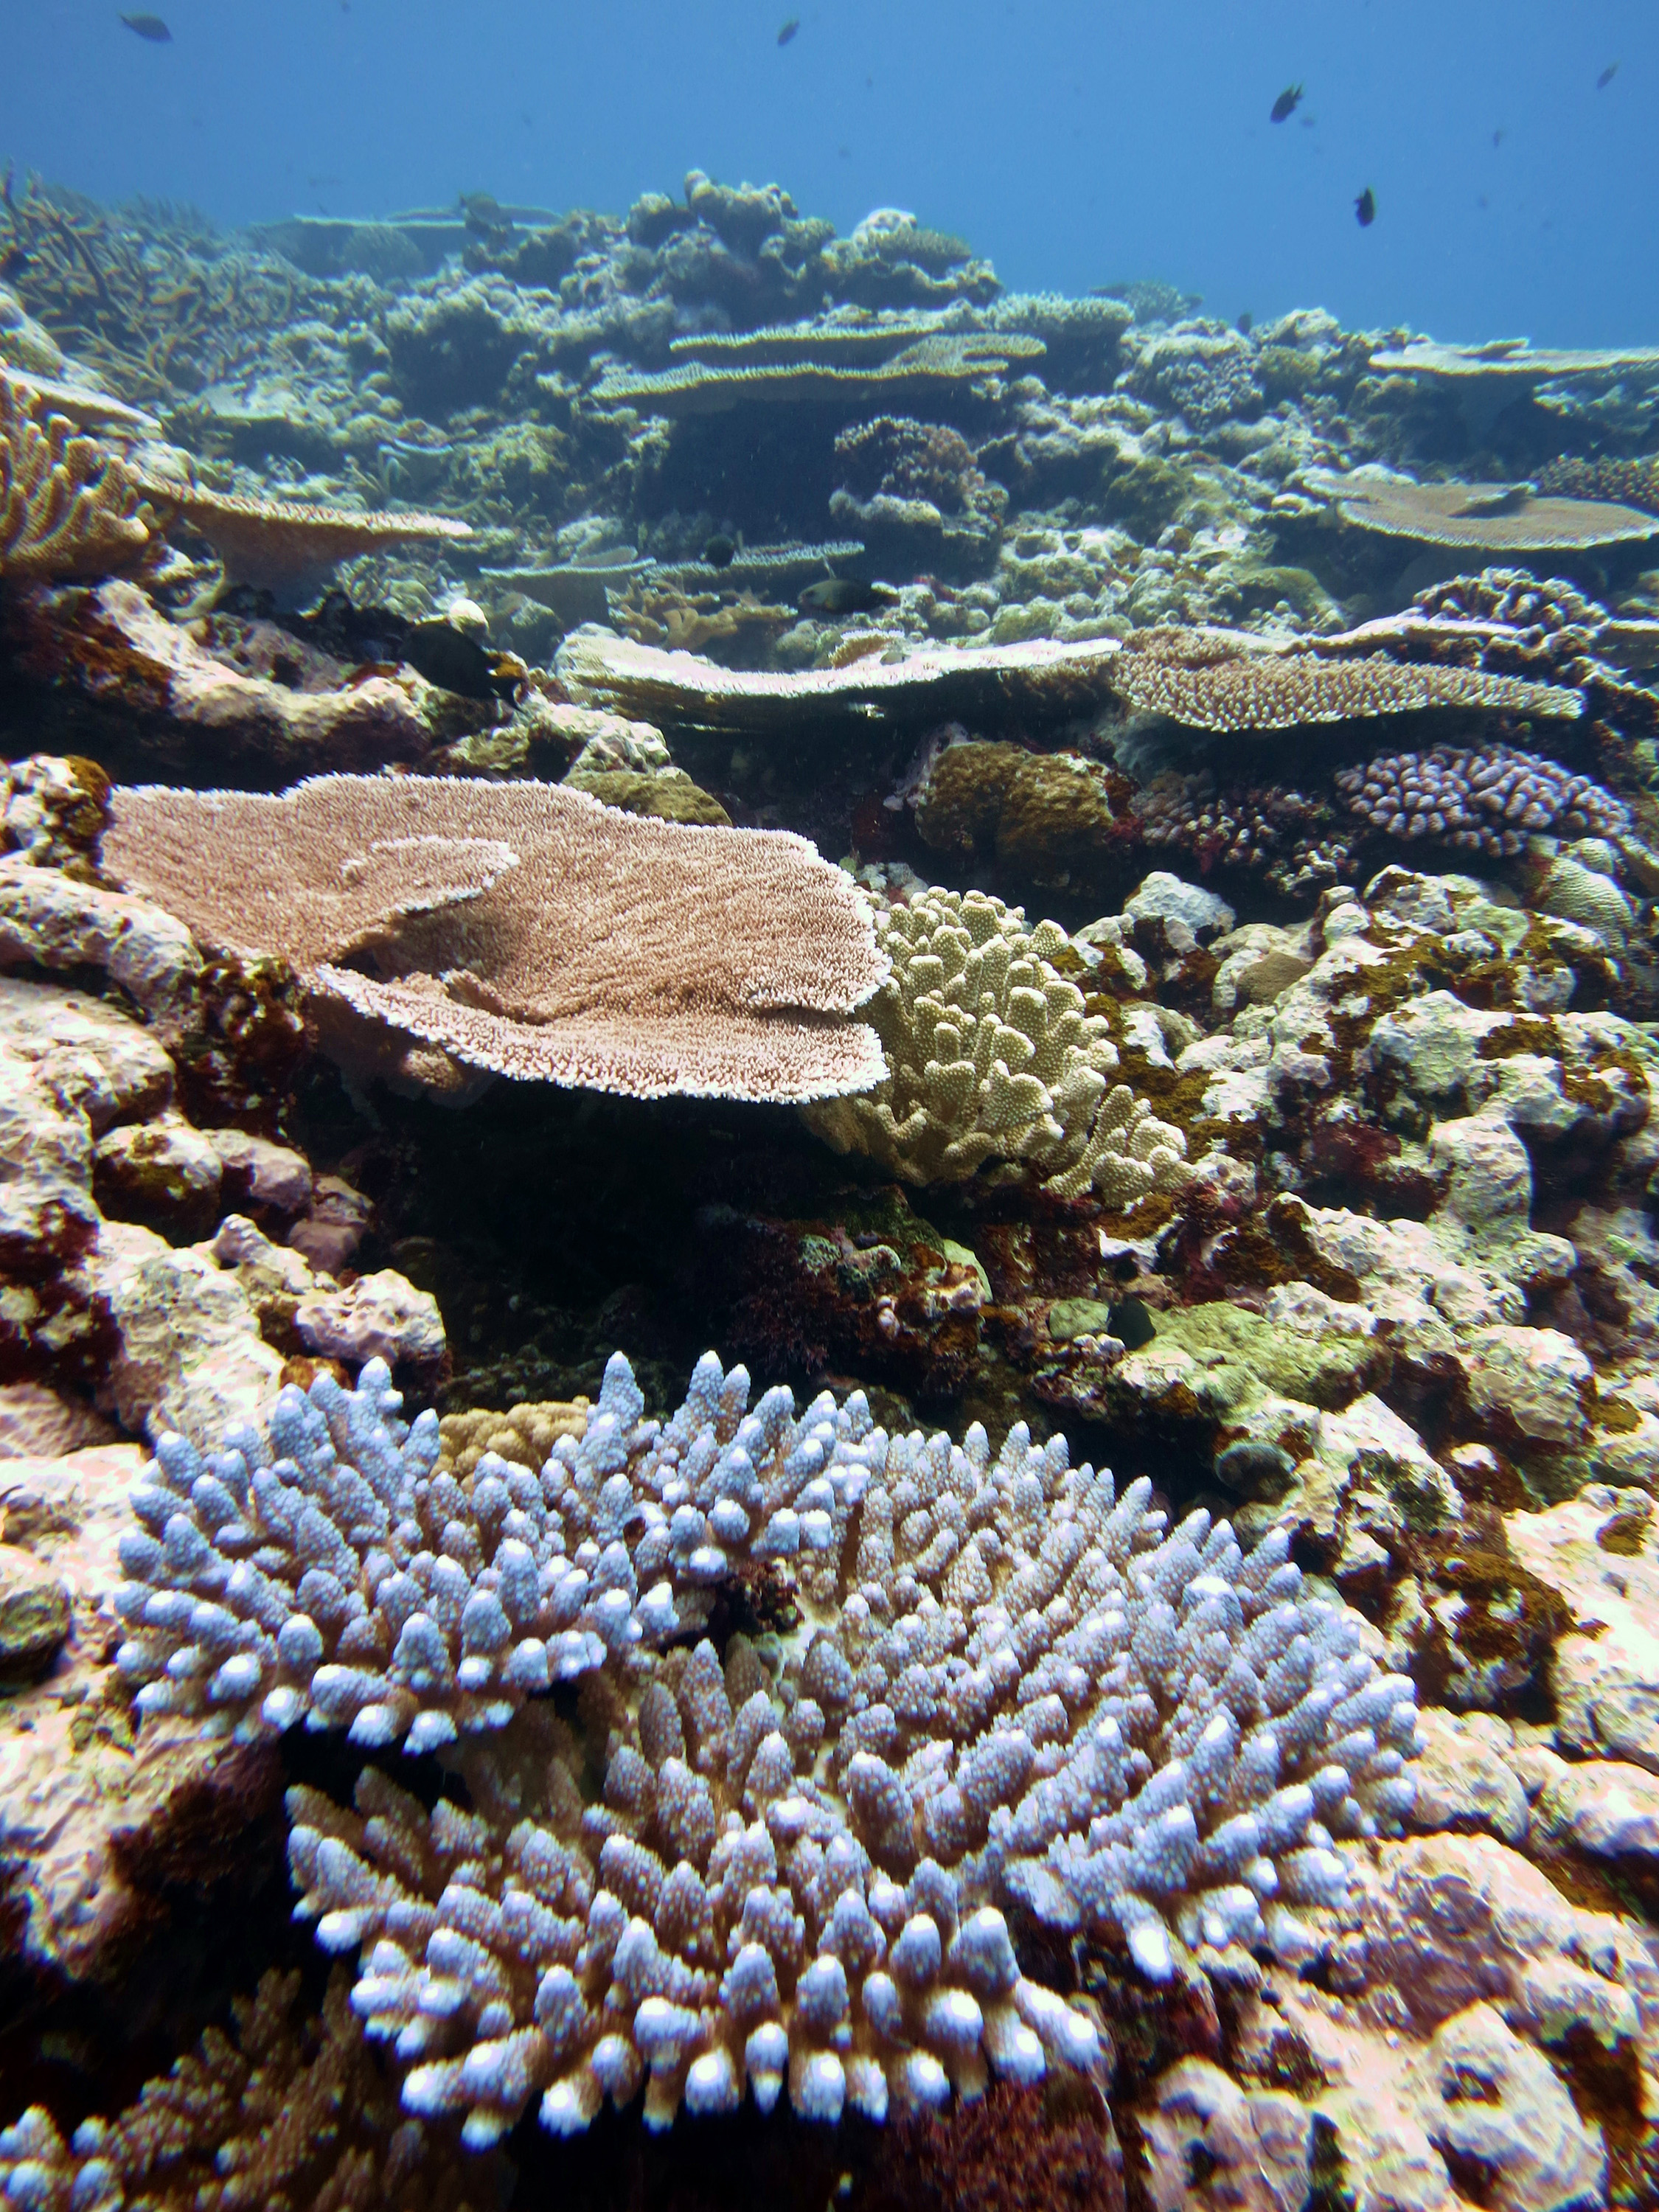 NOAA scientists quantify coral reef growth to monitor the effects of ocean acidification